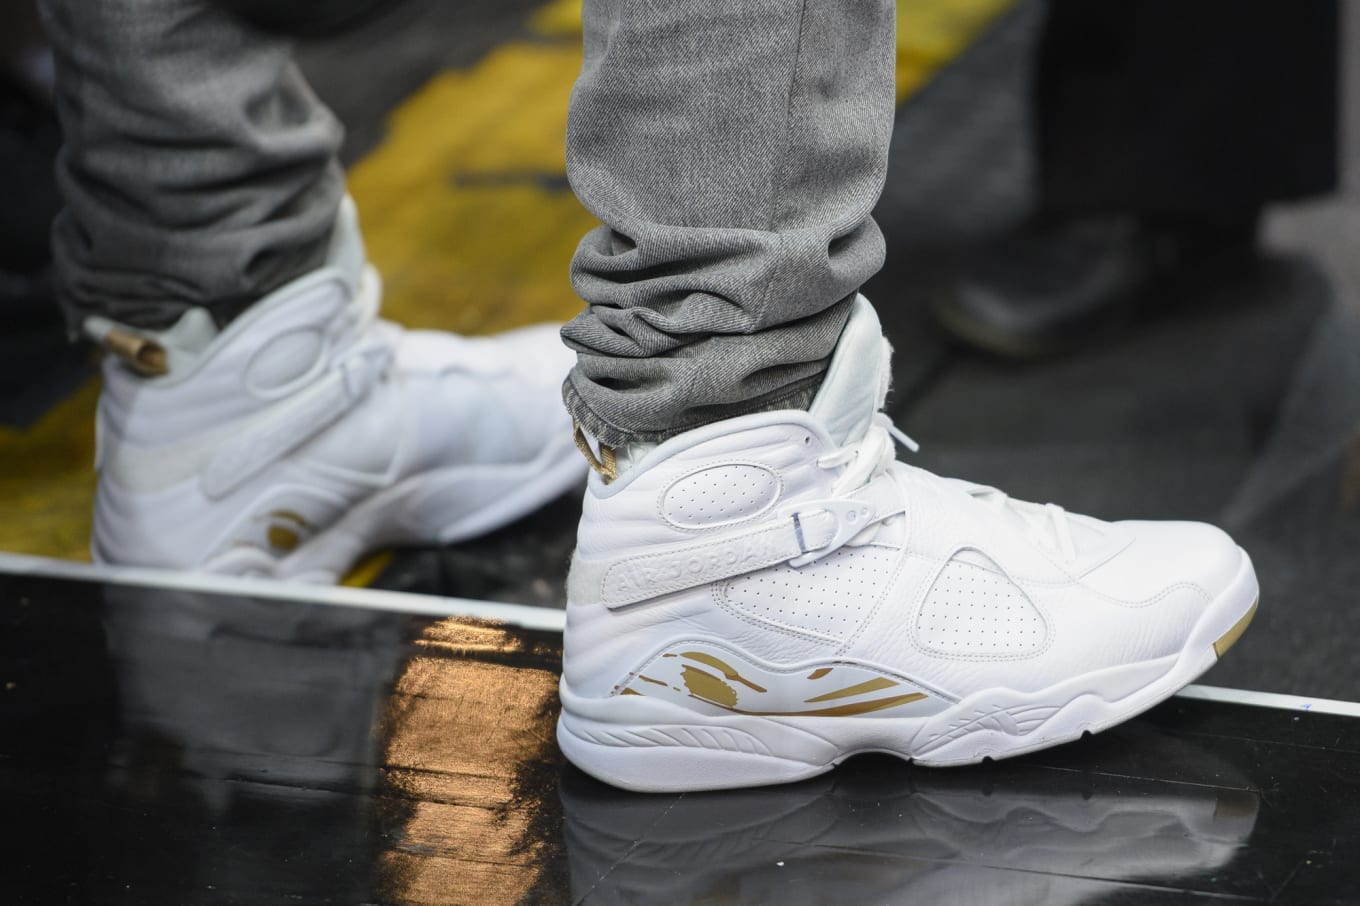 buy popular a4714 14d00 OVO Air Jordan 8s Releasing in January. Black and white pairs scheduled for  2018.